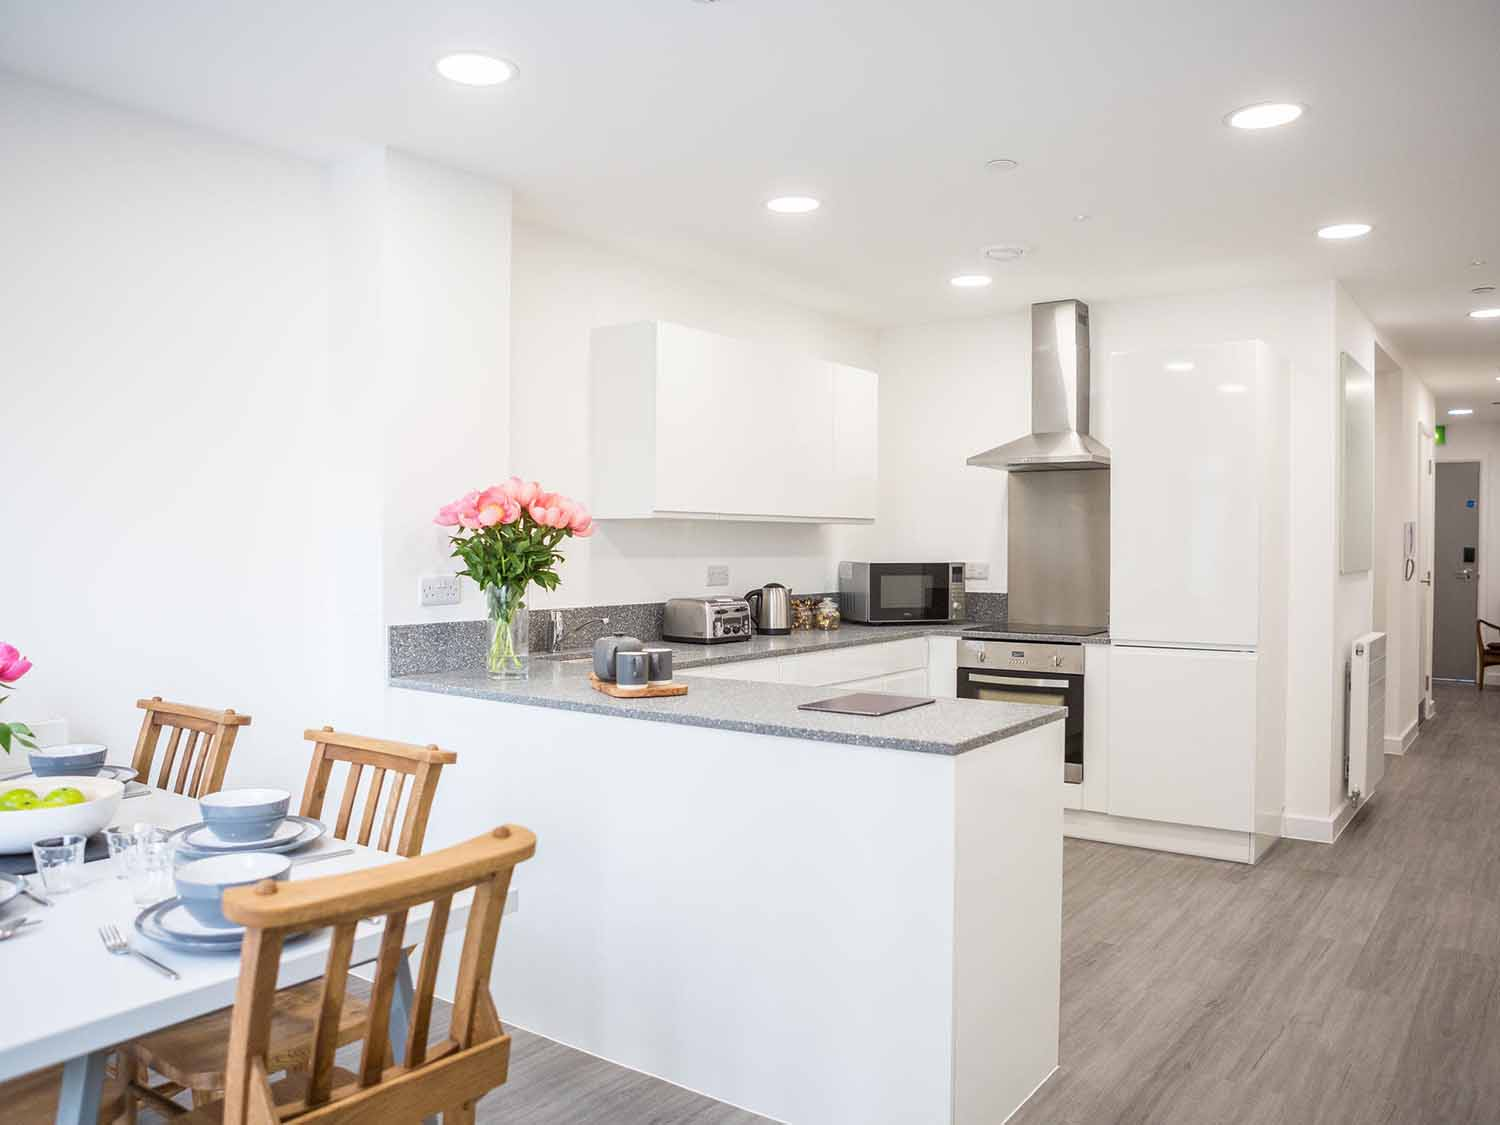 london_central_acc_chapter_lewisham_residence_kitchen_03